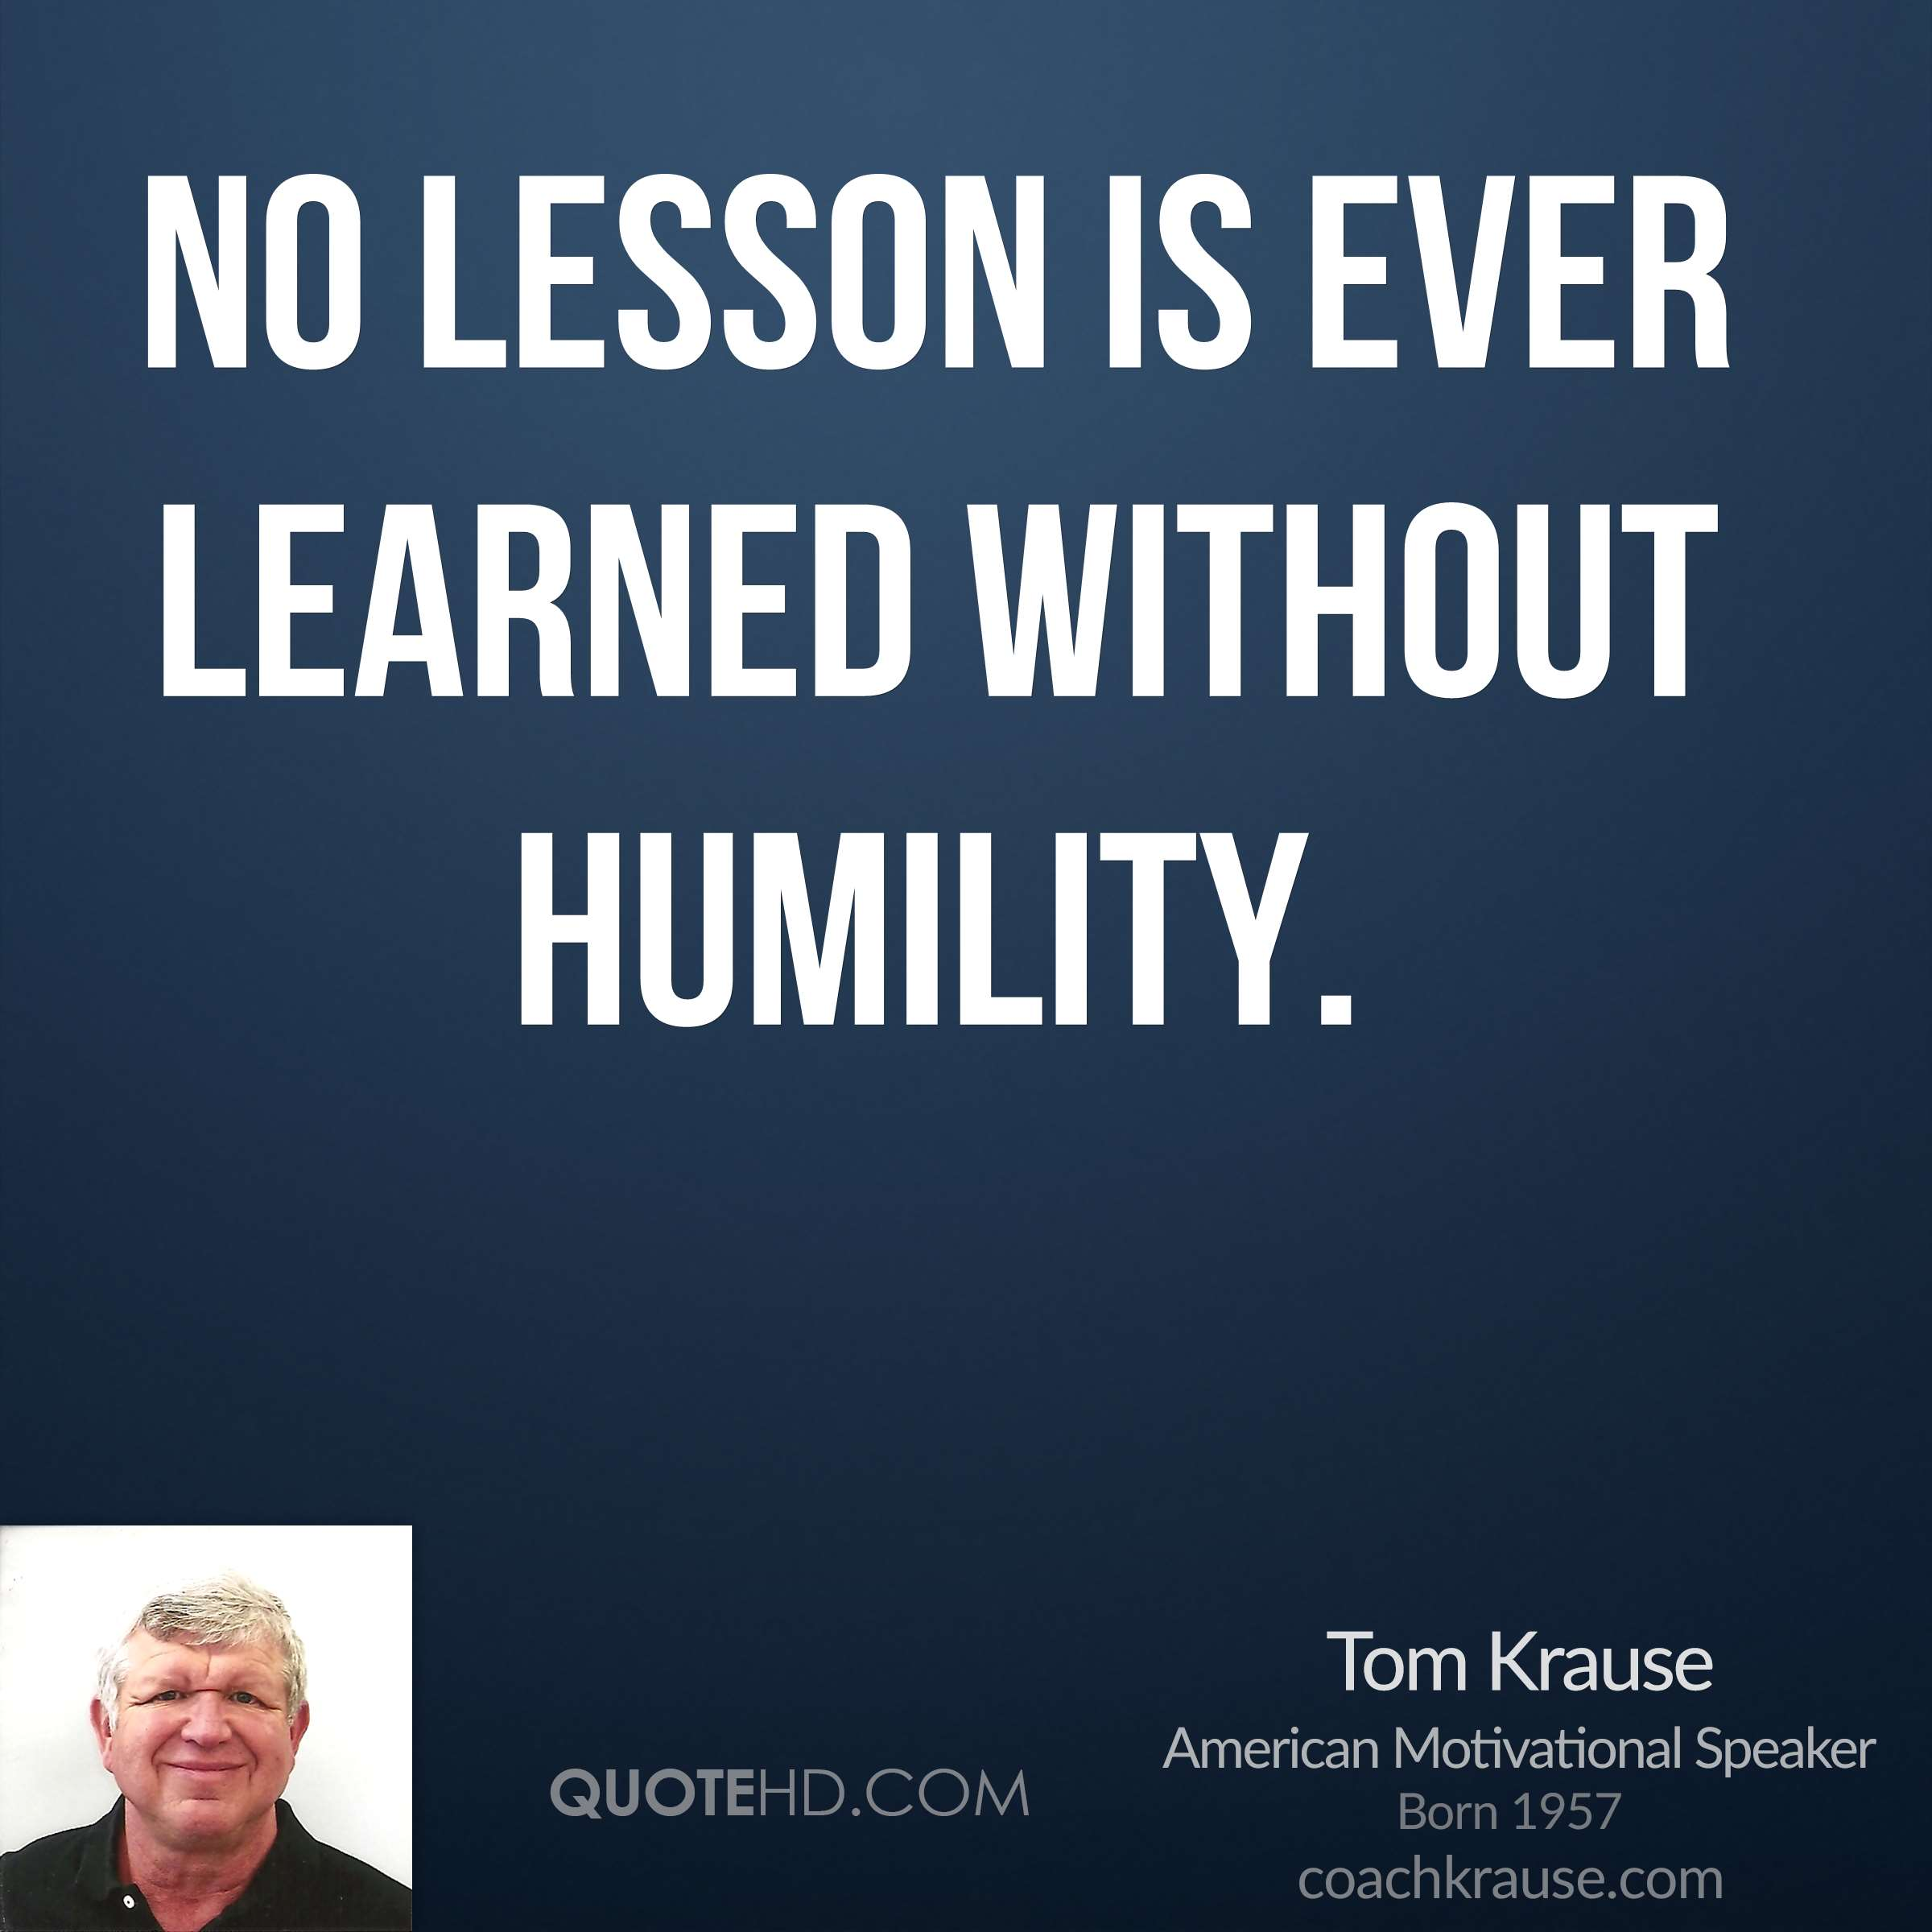 No lesson is ever learned without humility.